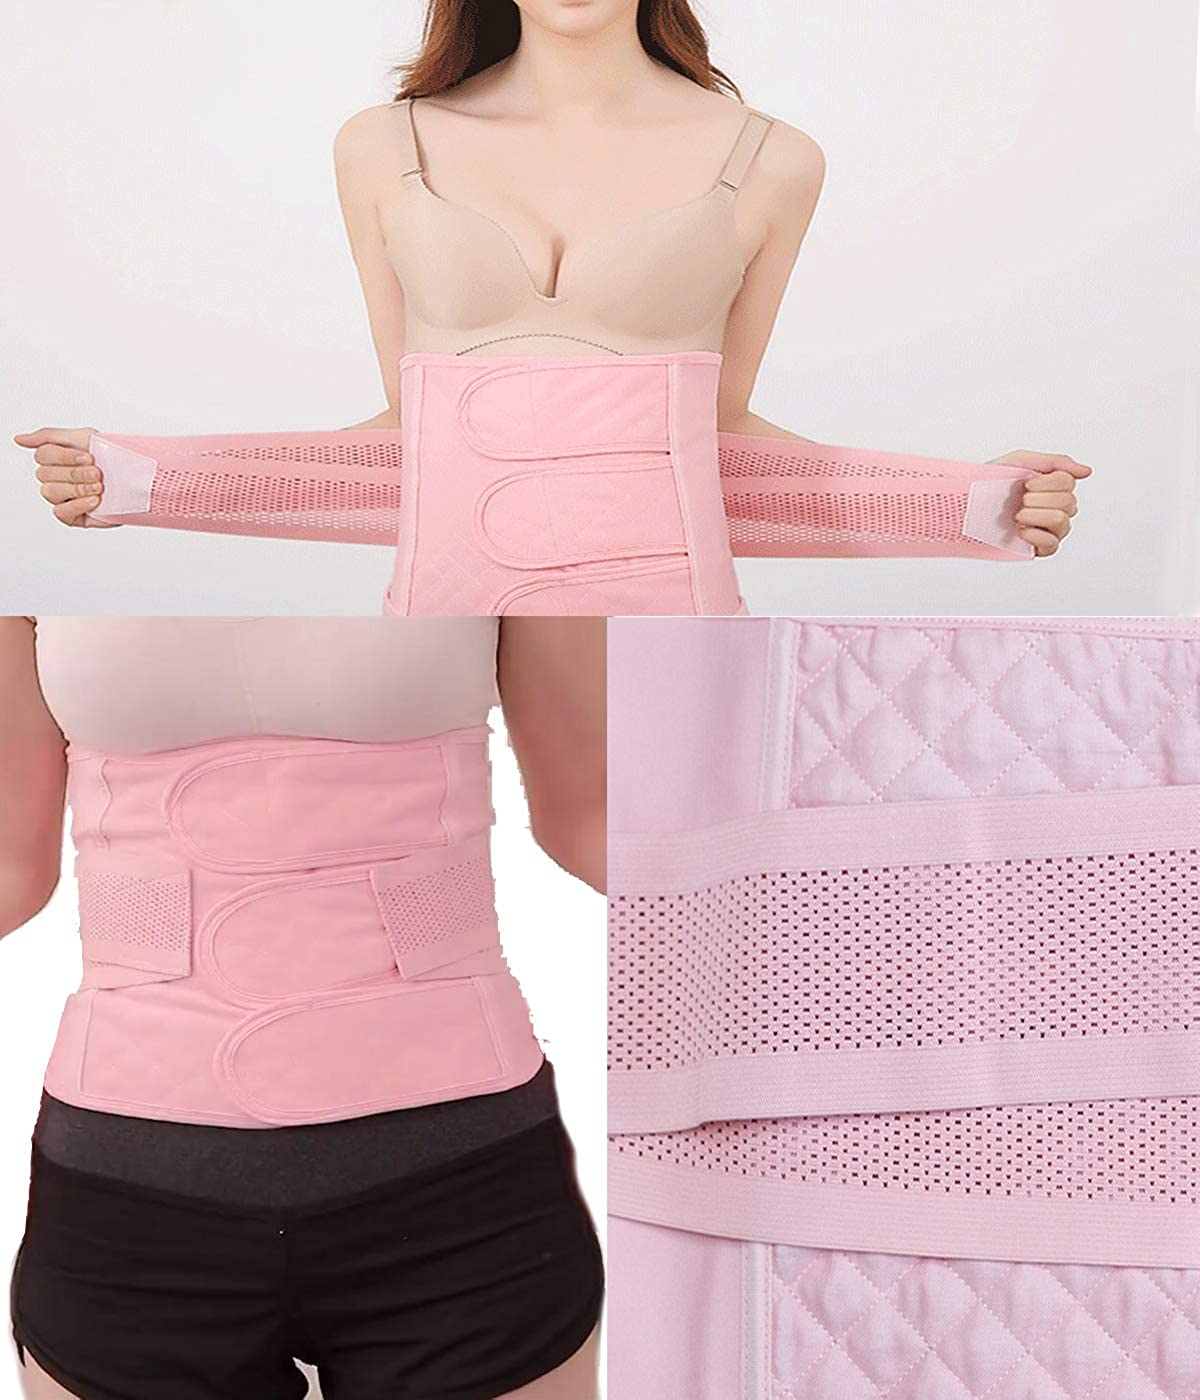 Women Postpartum Belly Wrap Band C Section Recovery Girdle Belt Support Post Partum Waist Trainer Binder After Pregnancy